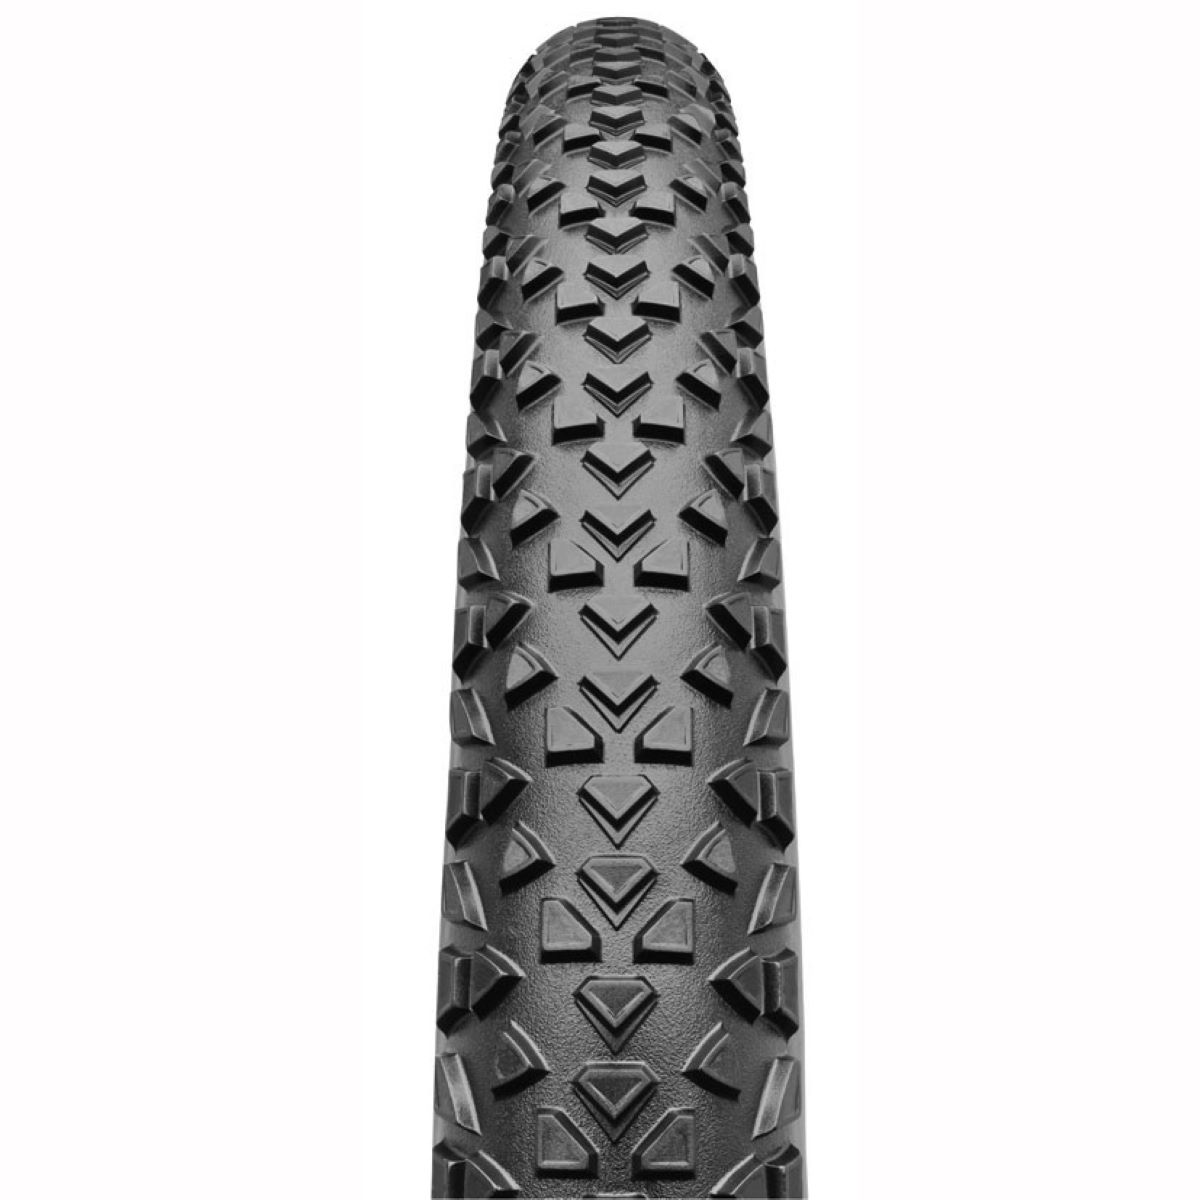 Pneu VTT Continental Race King Pure Grip 29 pouces (souple) - 29 x 2.2